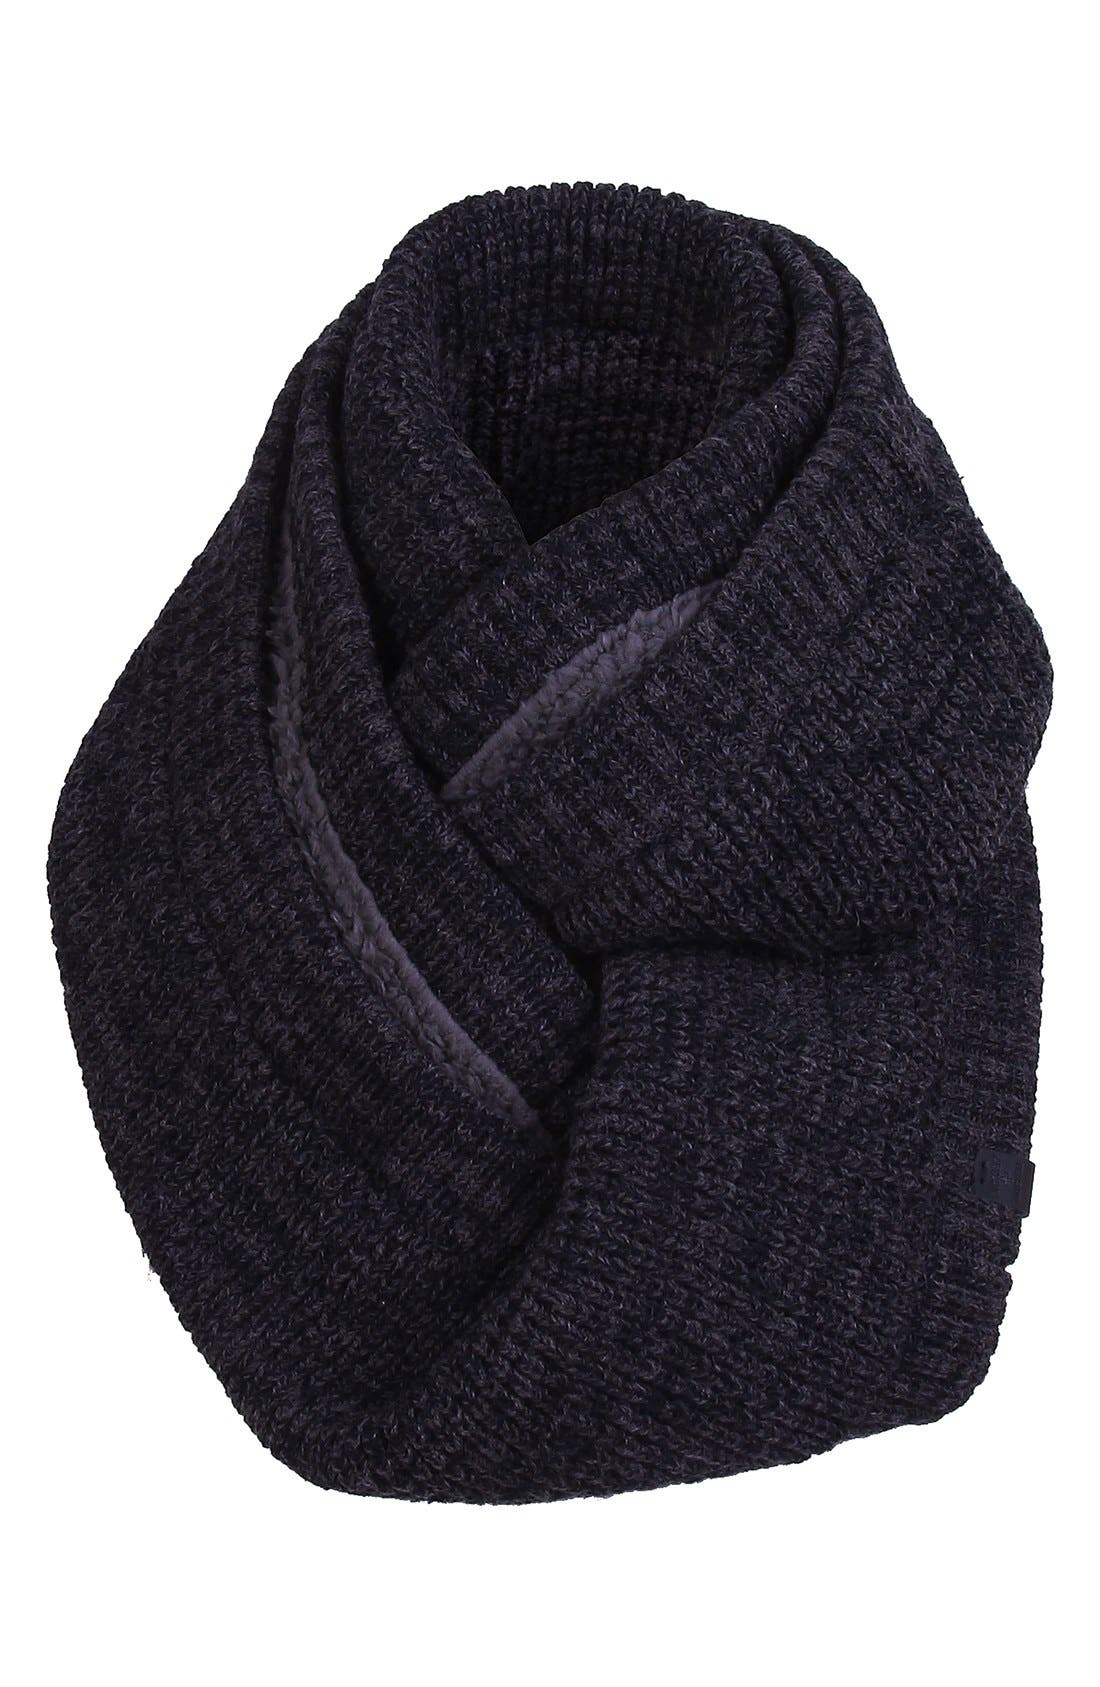 Main Image - Bickley + Mitchell Infinity Scarf